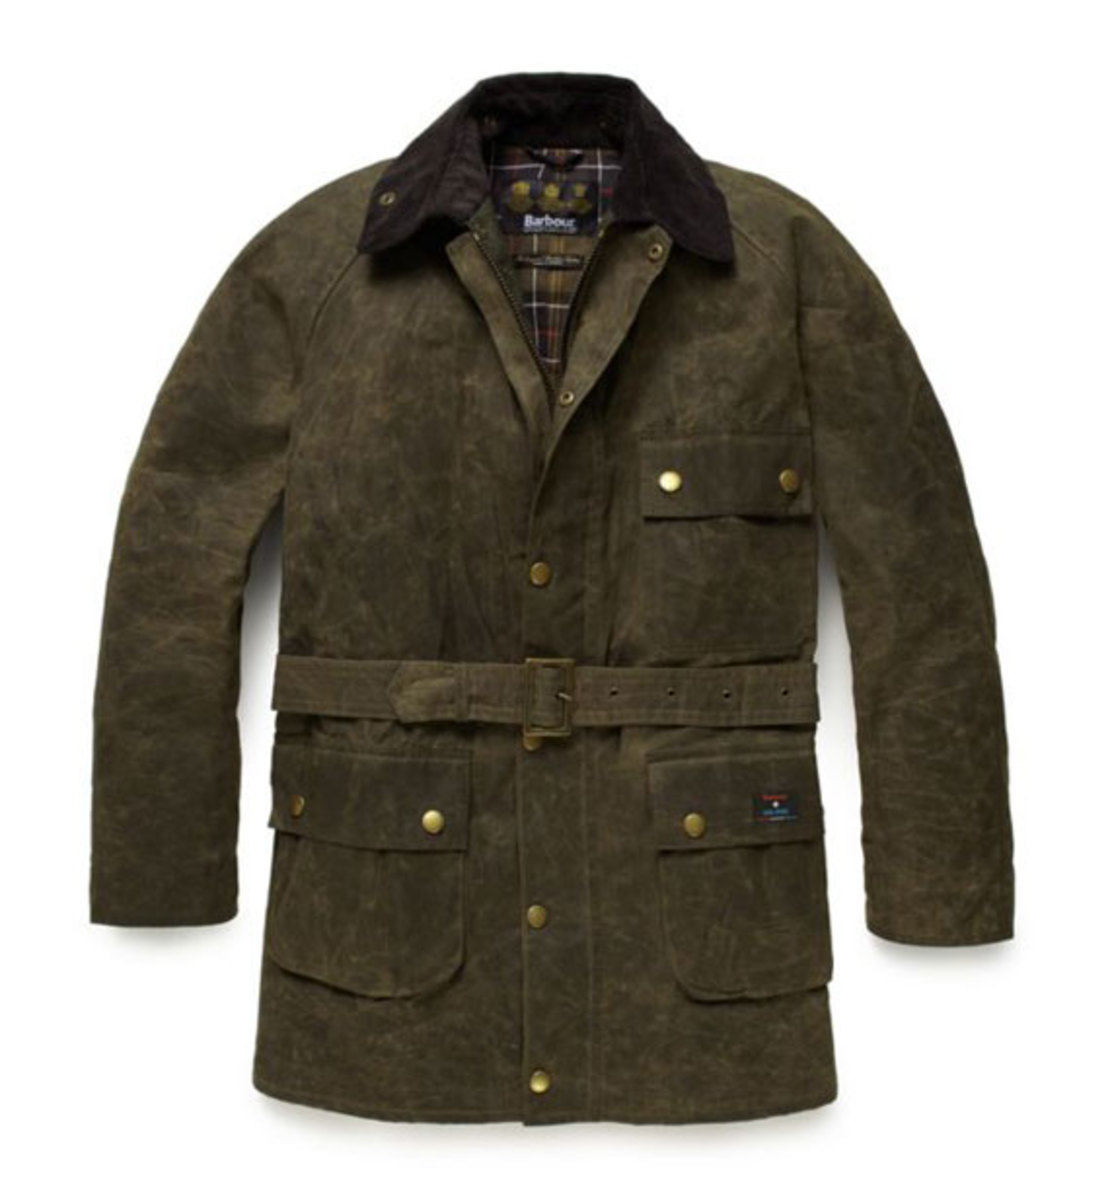 jack-spade-x-barbour-fall-winter-2012-capsule-collection-02